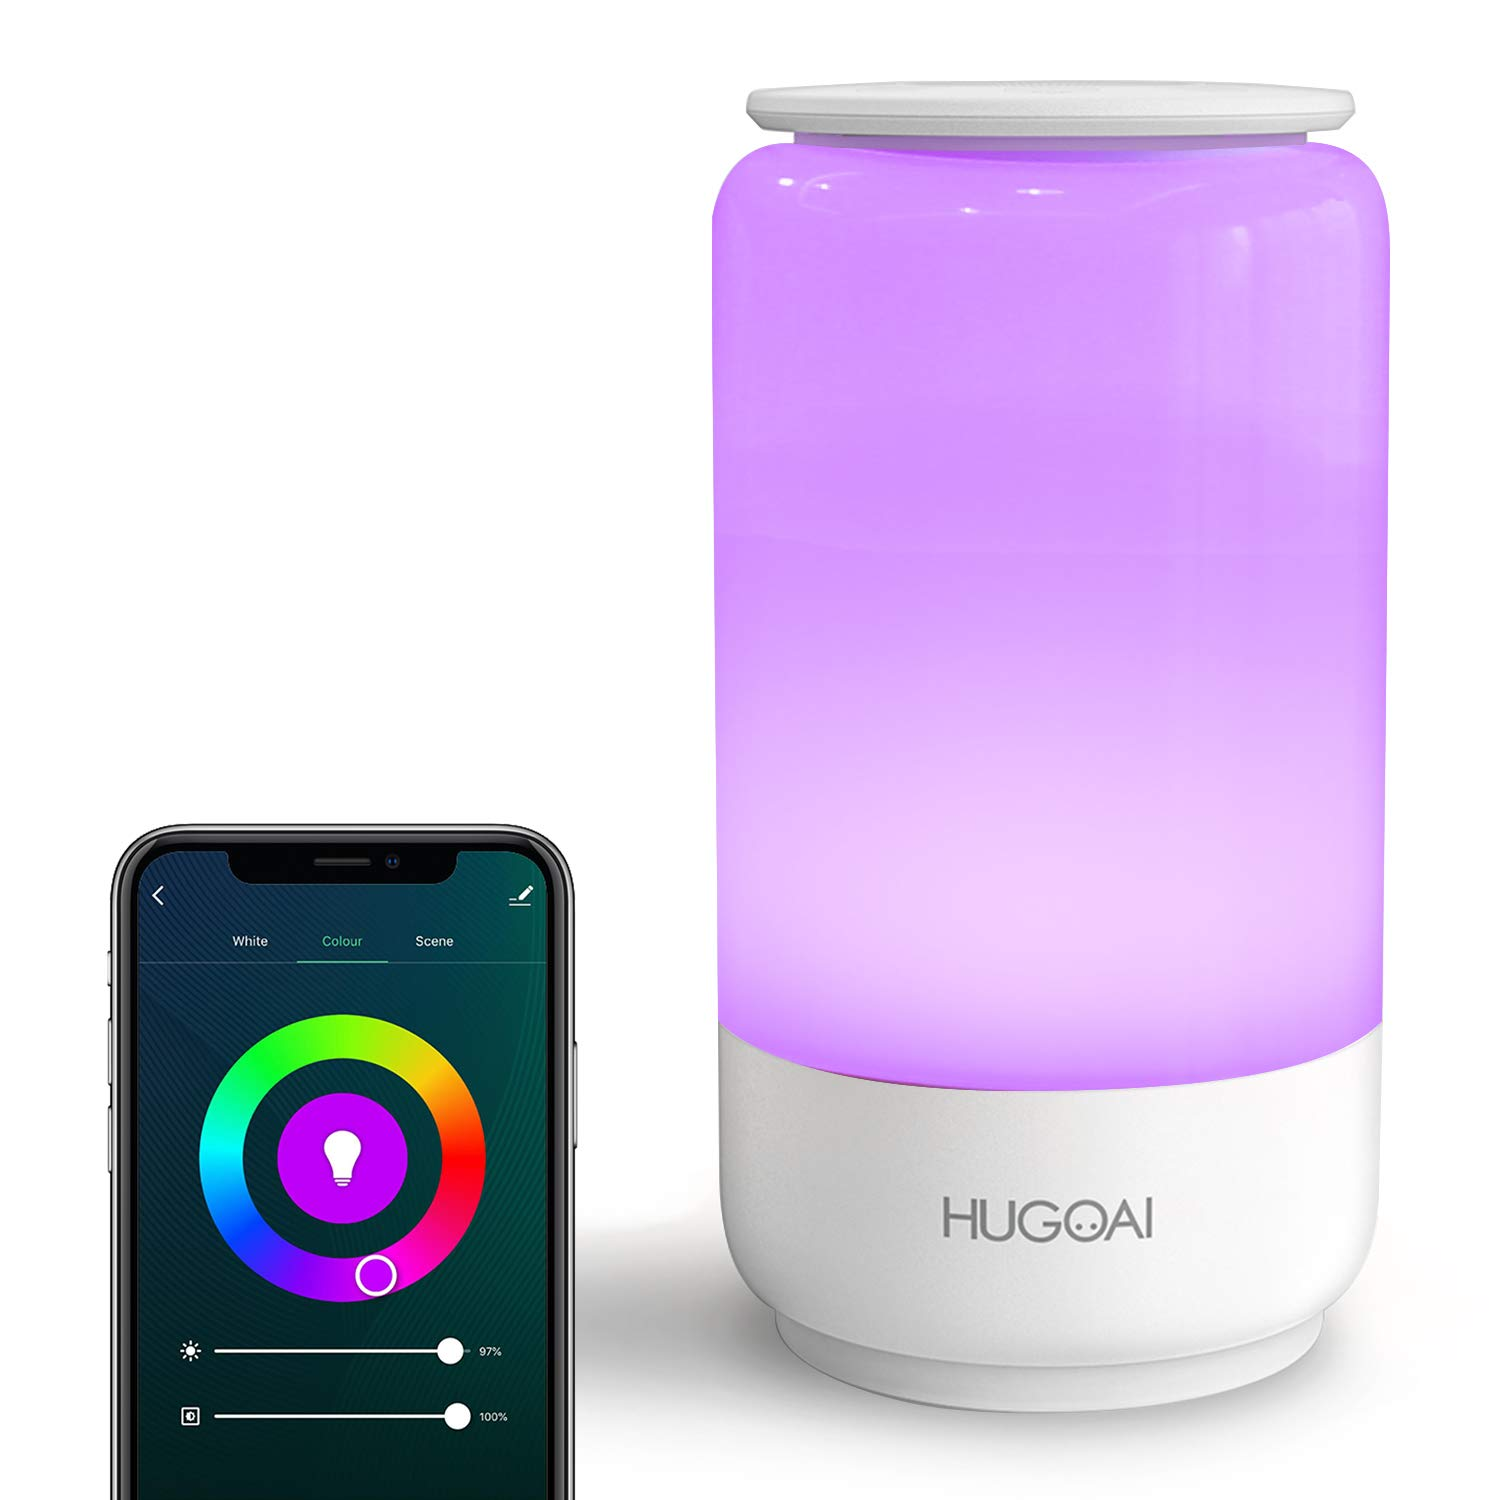 Smart LED Table Lamp, HUGOAI Dimmable Bedside Lamp, Night Light for Bedroom, Remote Control and Easy Wi-Fi Connection, Alexa and Google Assistant Compatible - White